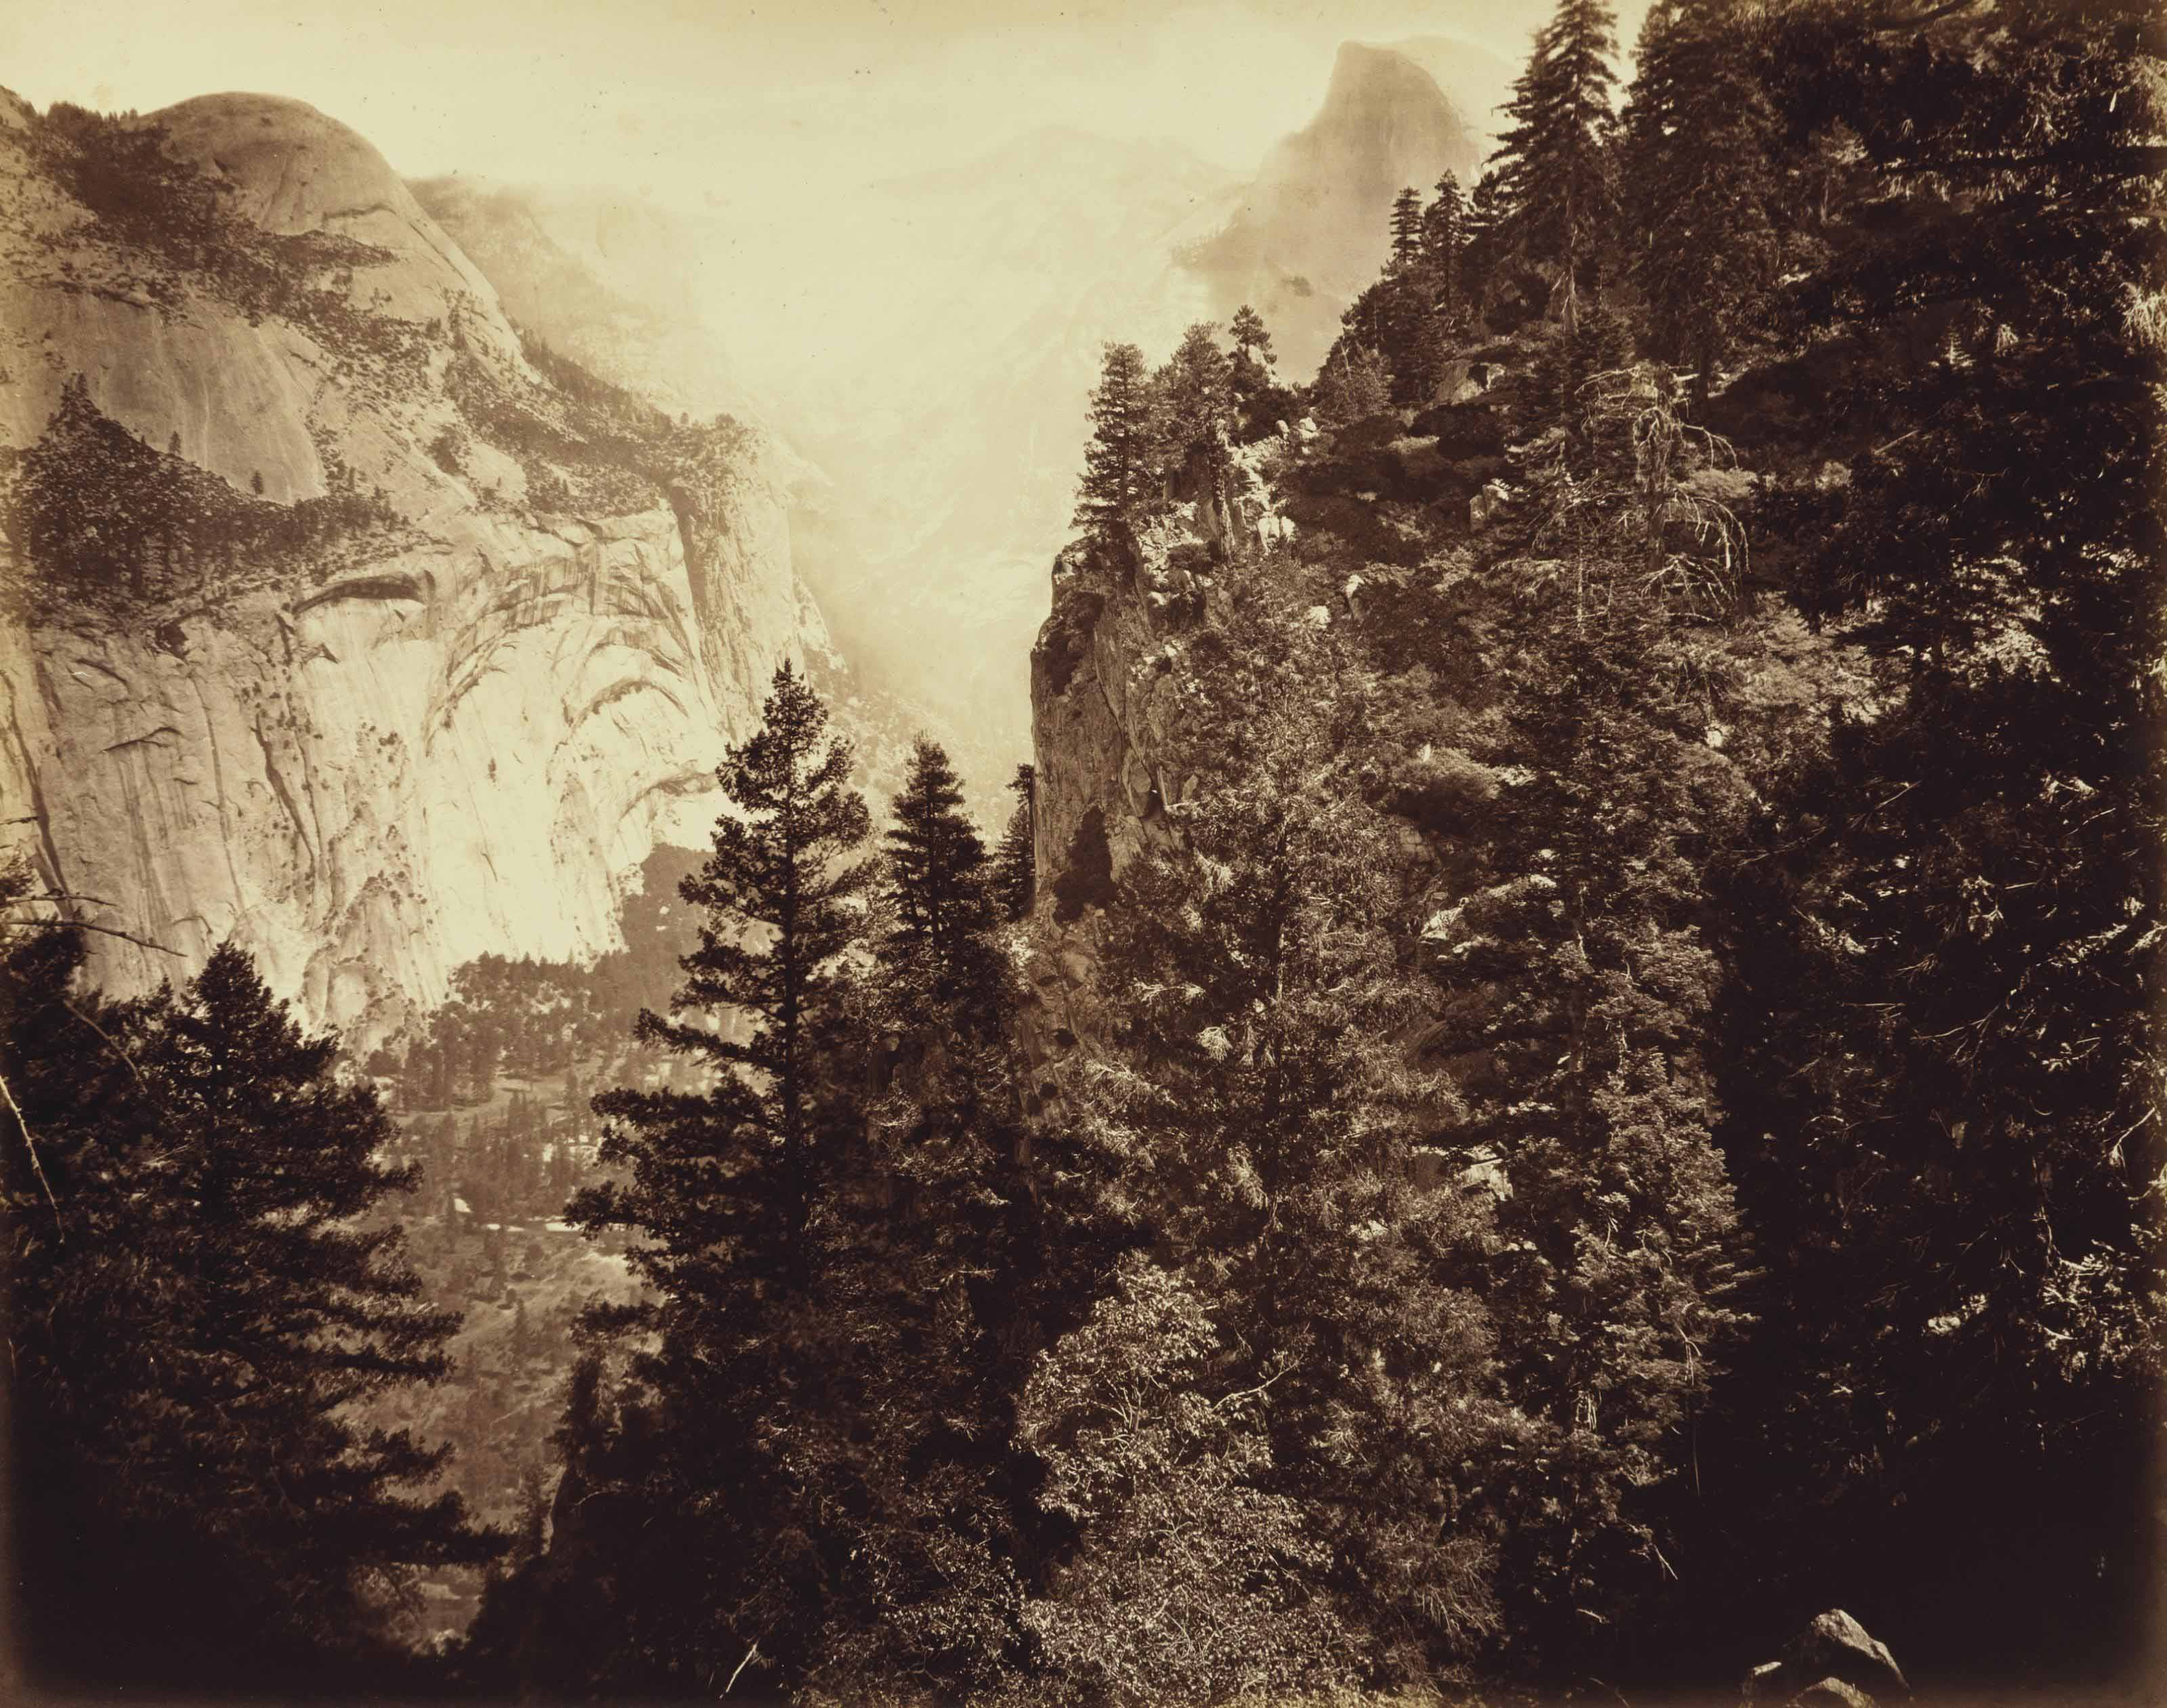 Tenaya Canyon: Valley of the Yosemite, 1872